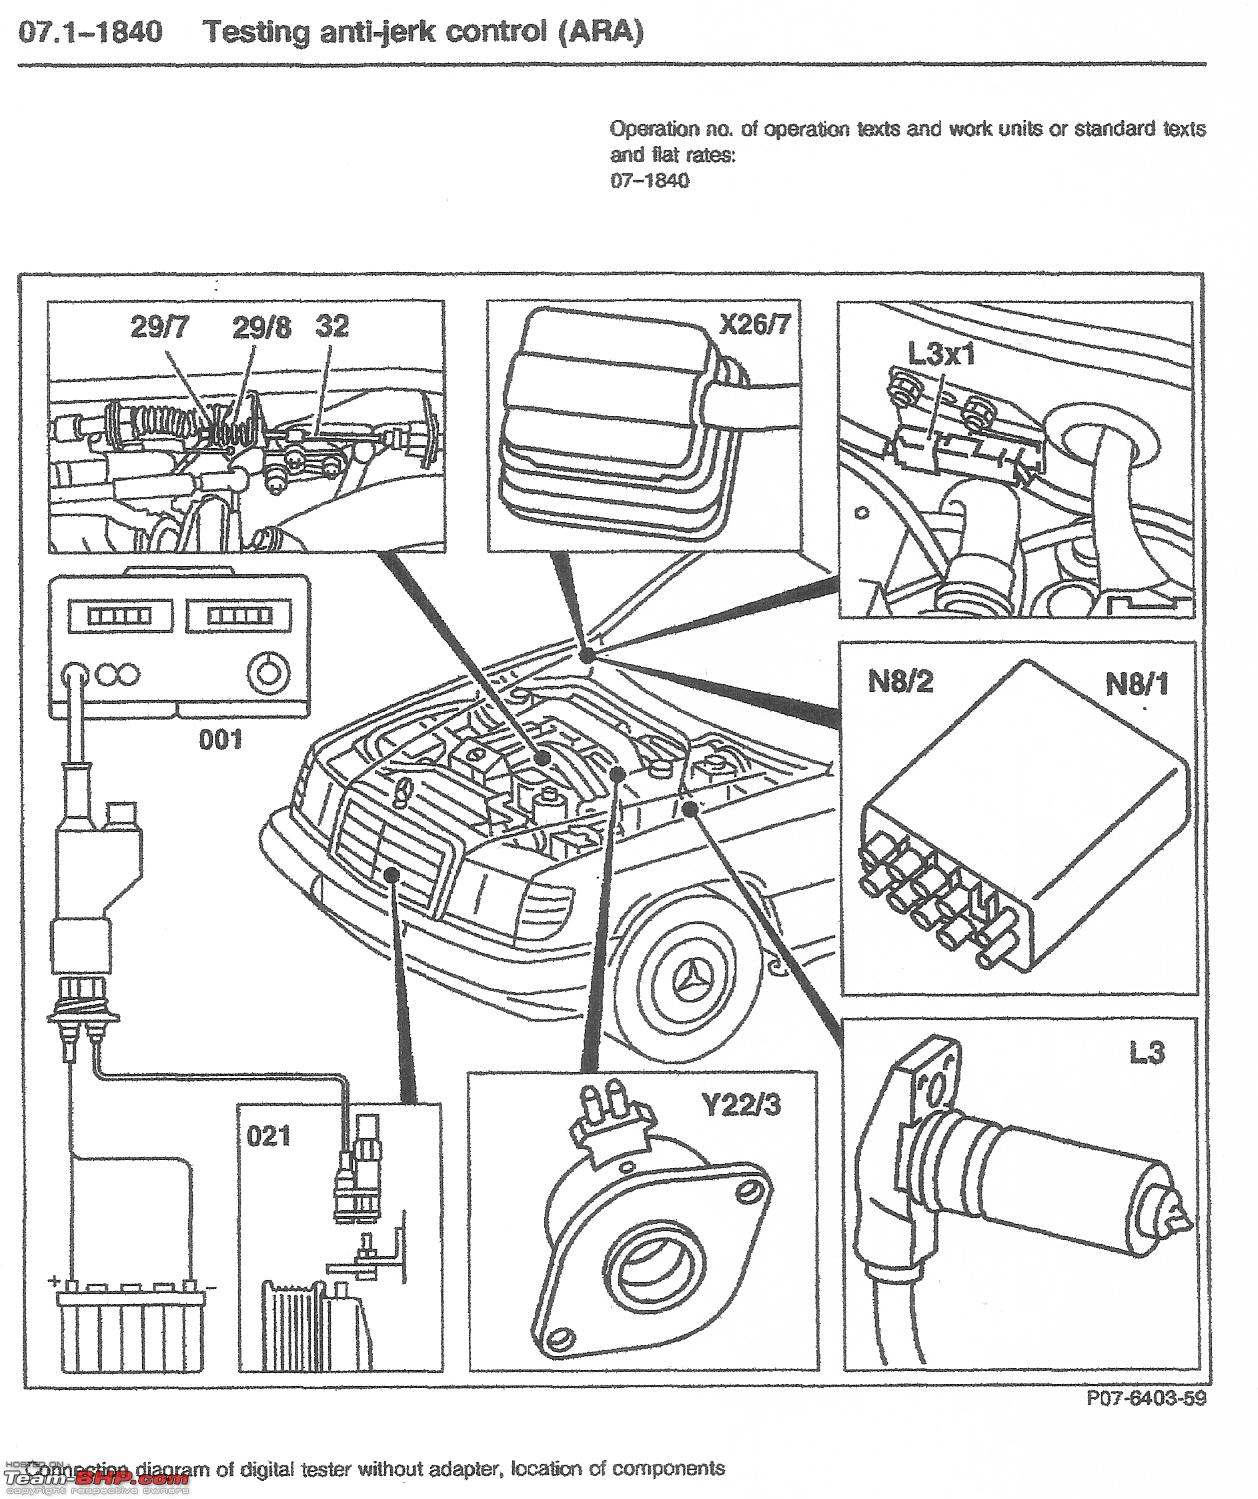 1242235d1400517927 mercedes w124 e class support group antijerk control ara a c compressor fuse box automotive fuses wiring diagram ~ odicis w124 fuse box diagram at mifinder.co